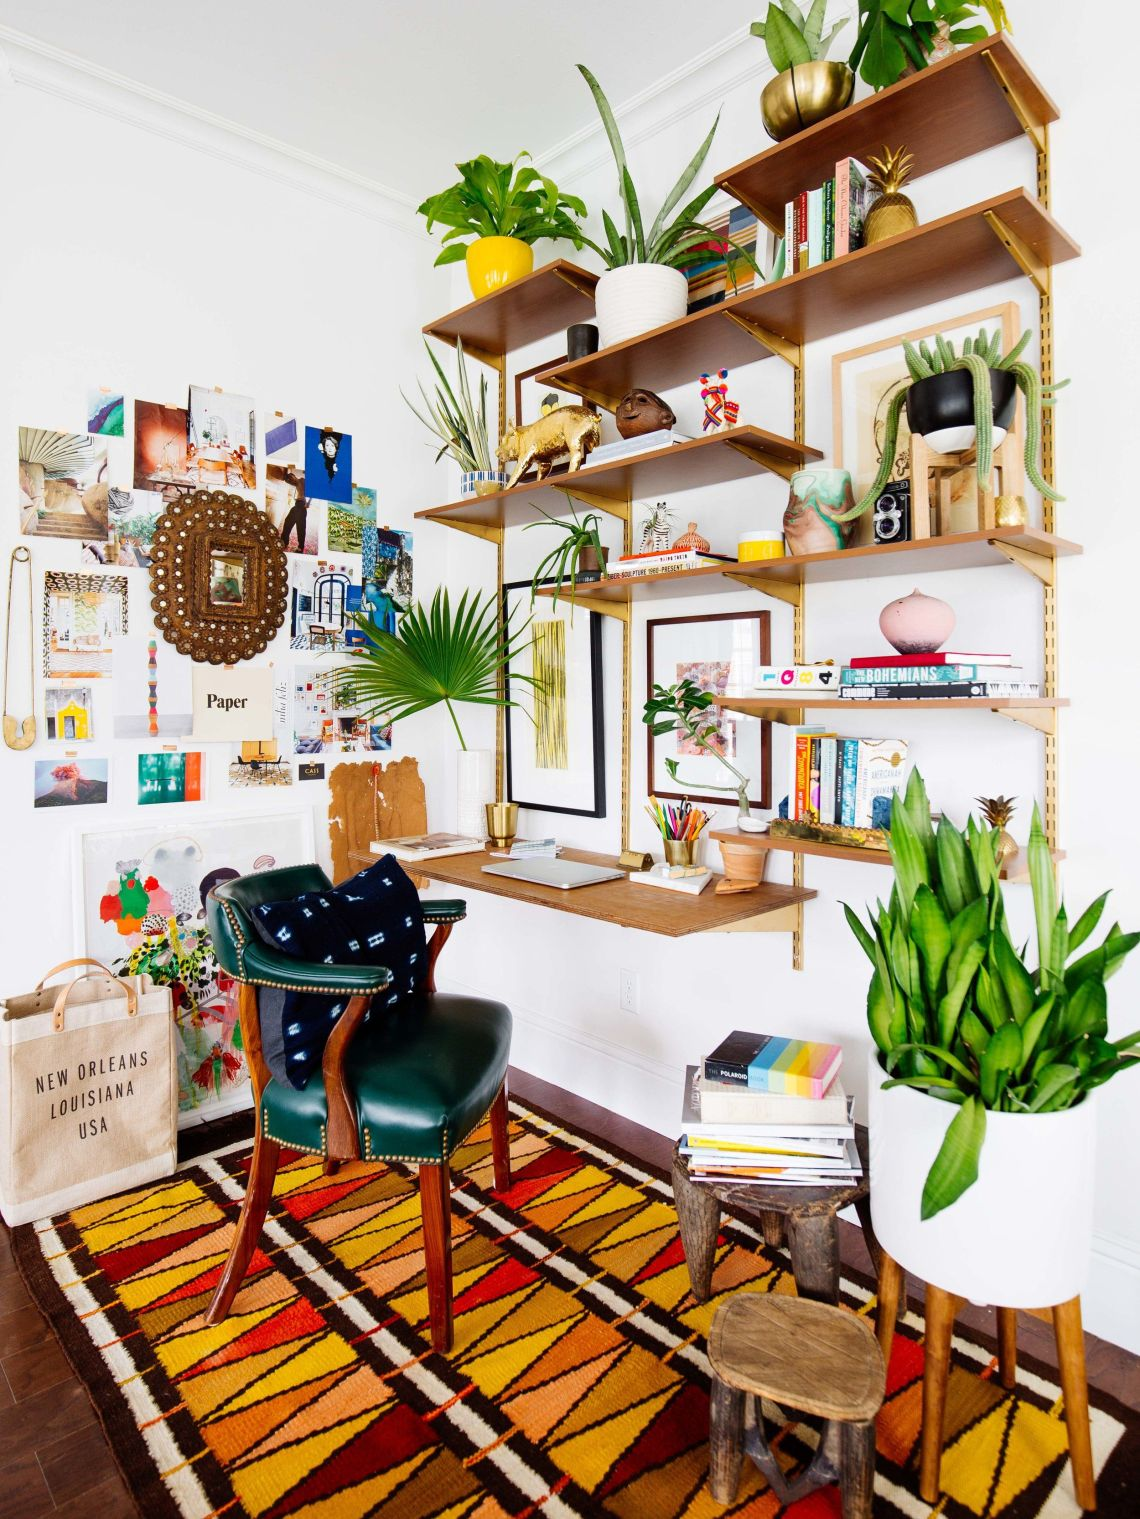 15 Small House Interior Design Ideas - How to Decorate a ...